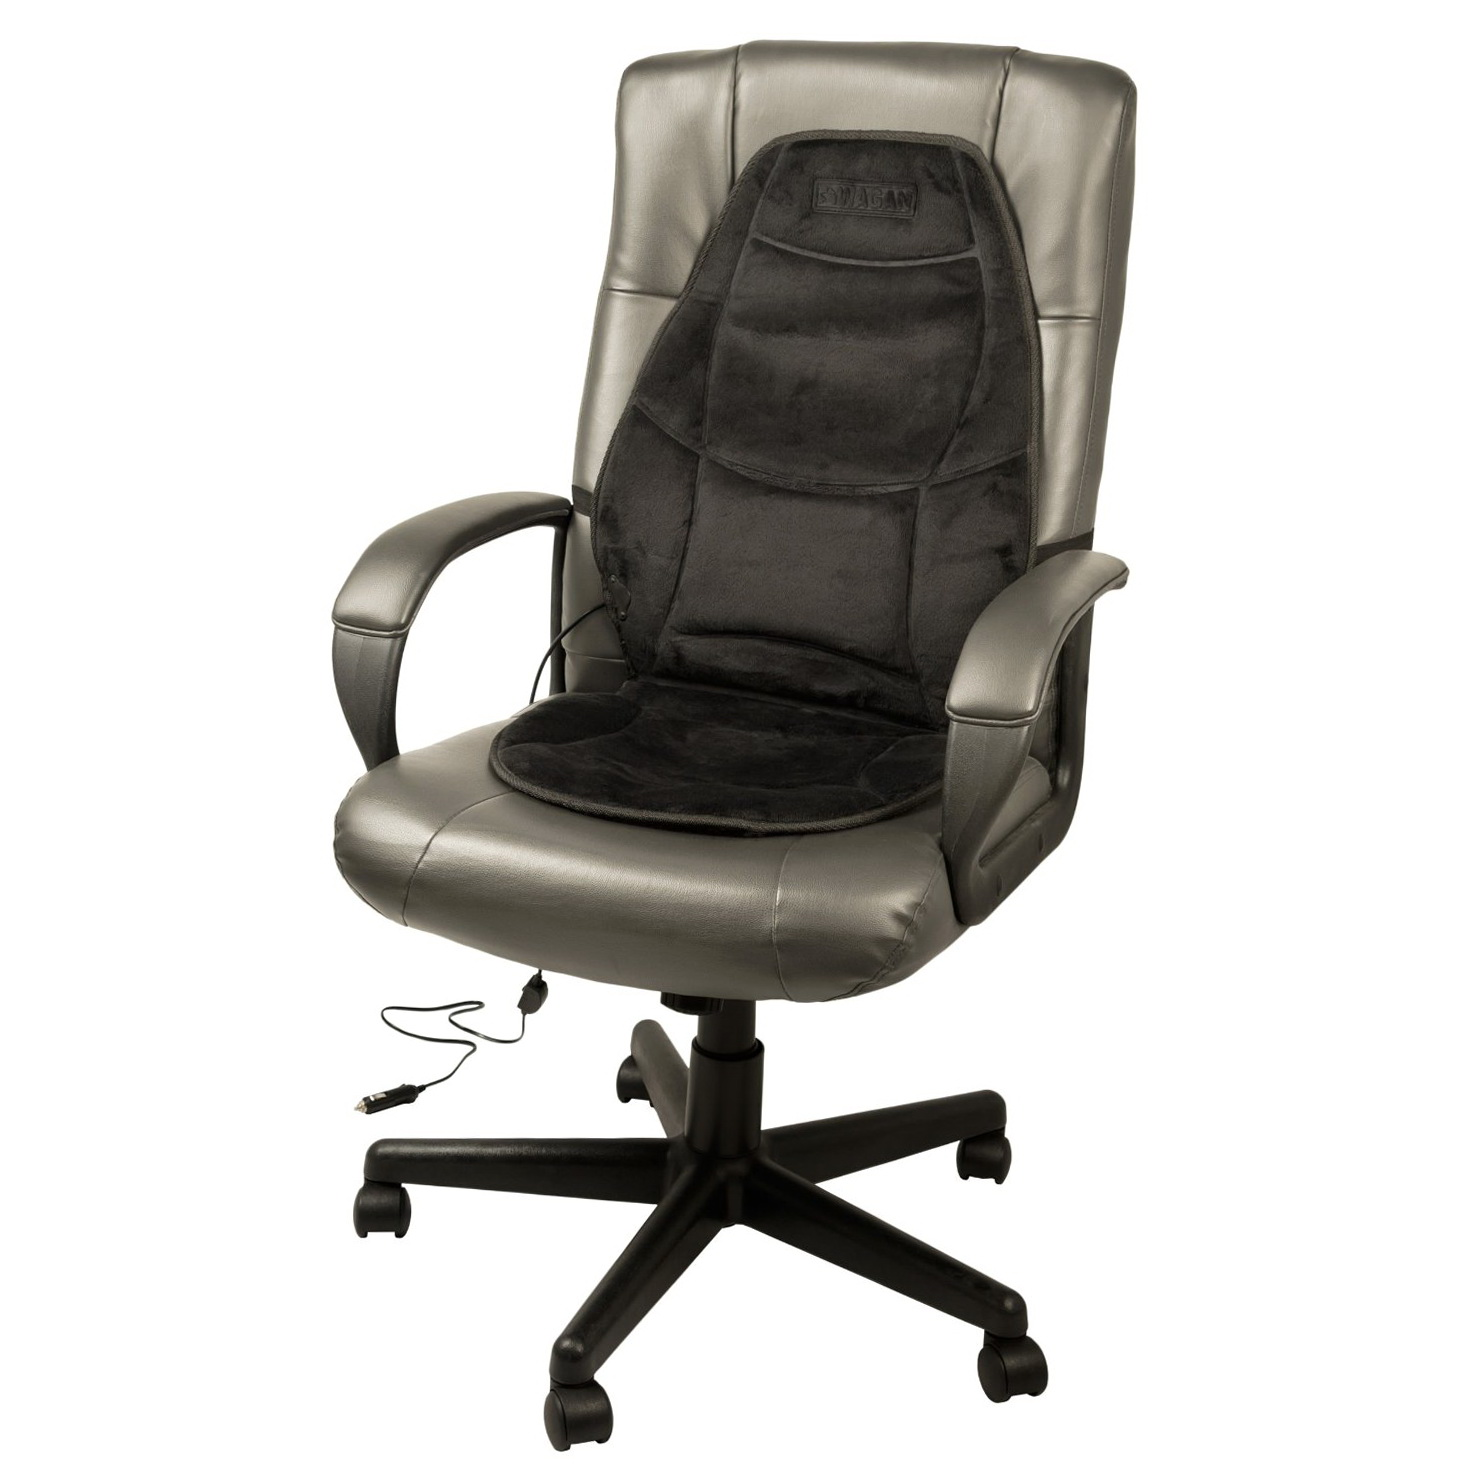 Heated Seat Cushion With Lumbar Support